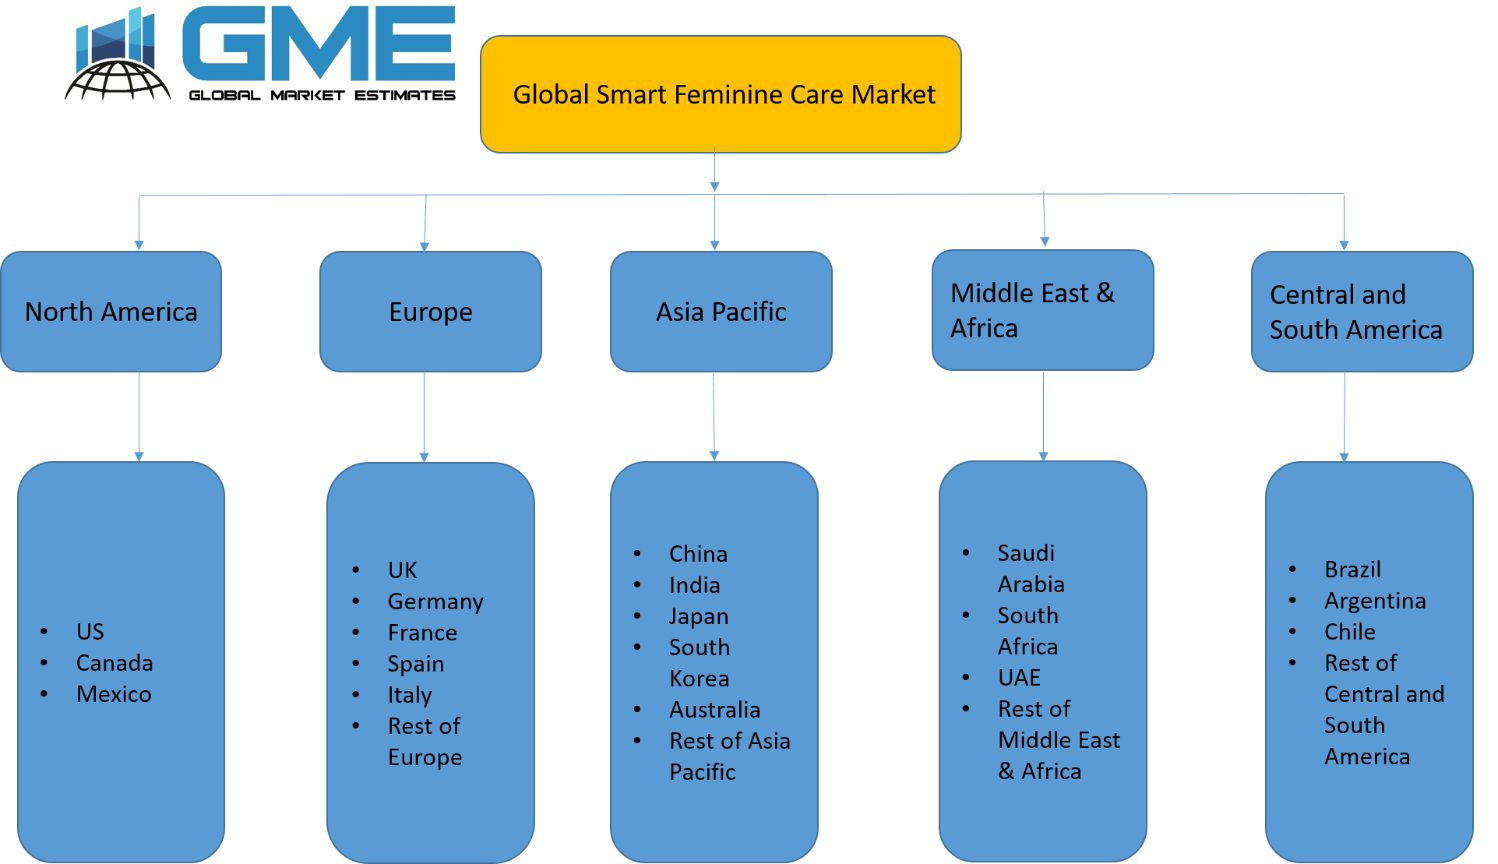 Smart Feminine Care Market - Regional Analysis